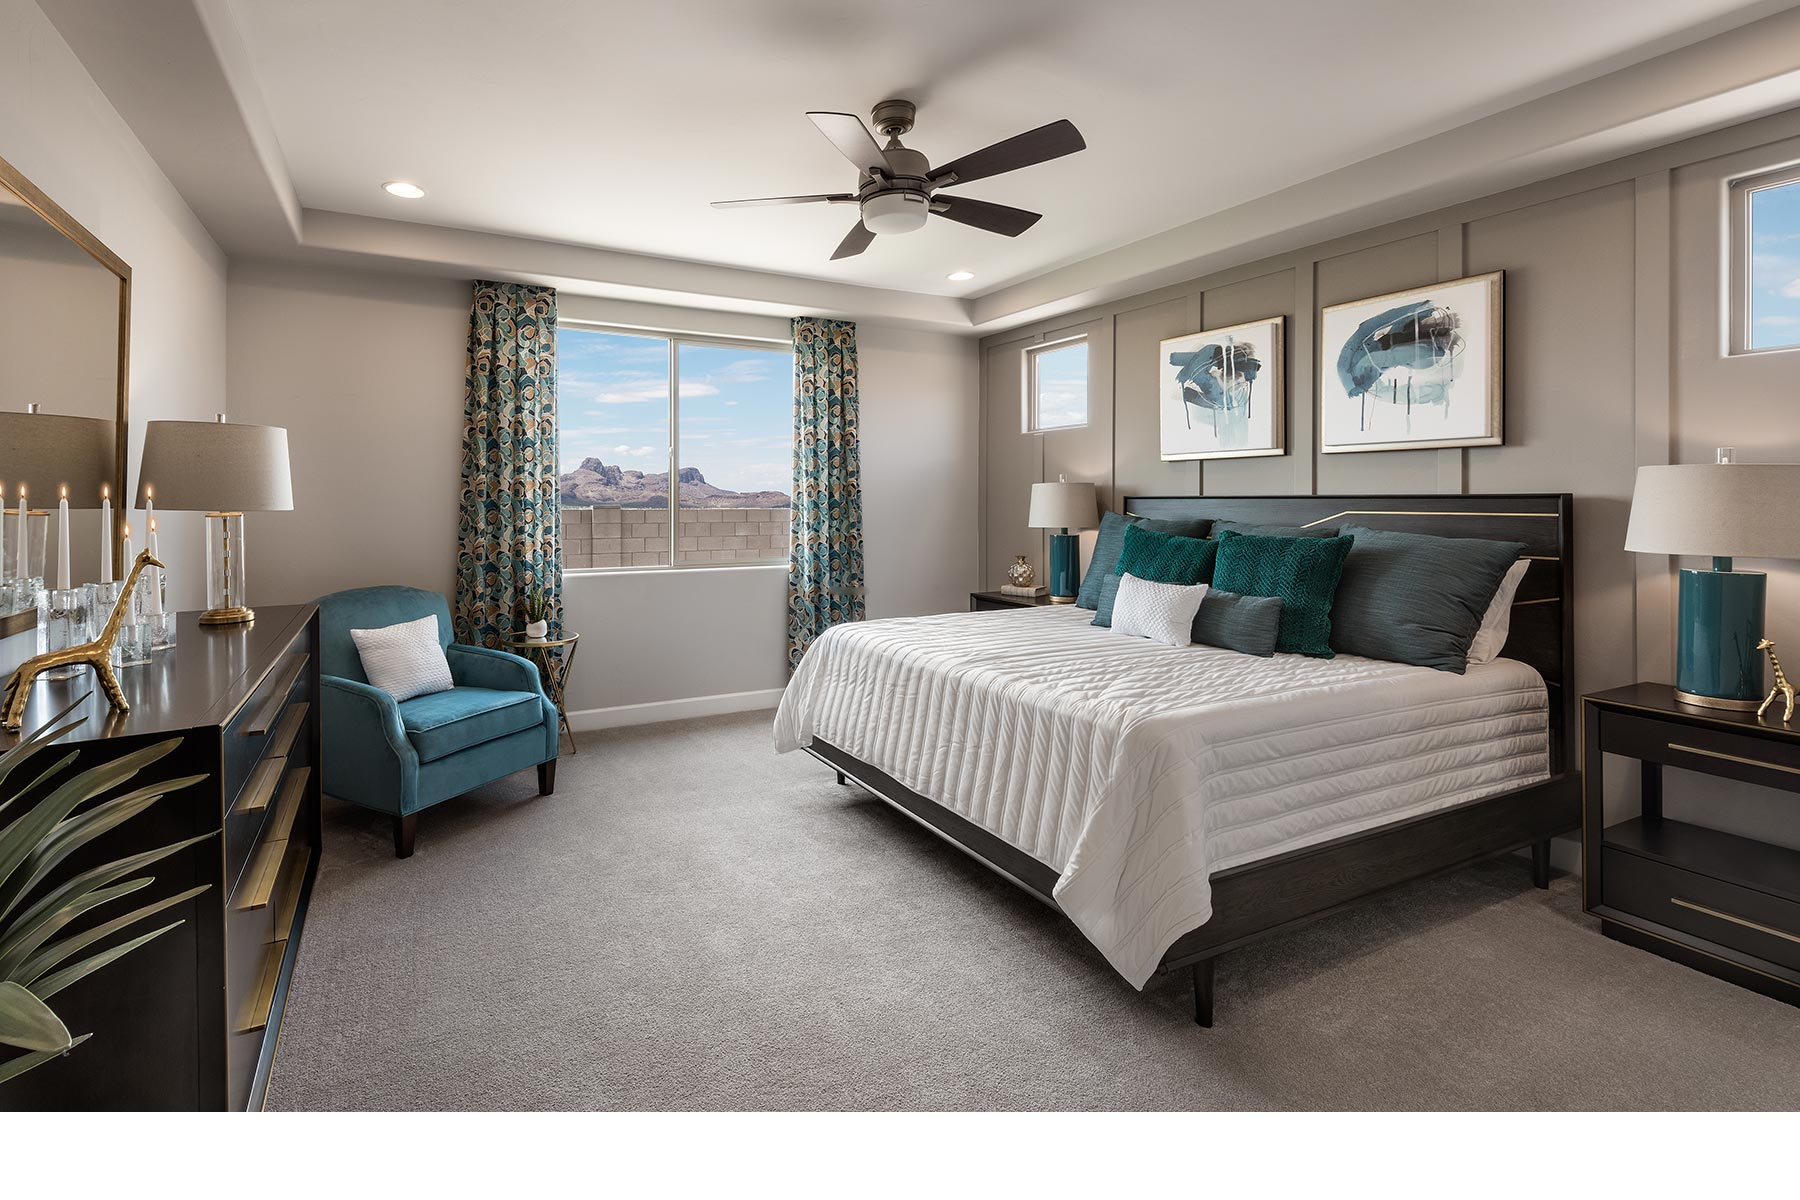 Willow Plan Bedroom at Desert Oasis at Twin Peaks in Marana Arizona by Mattamy Homes